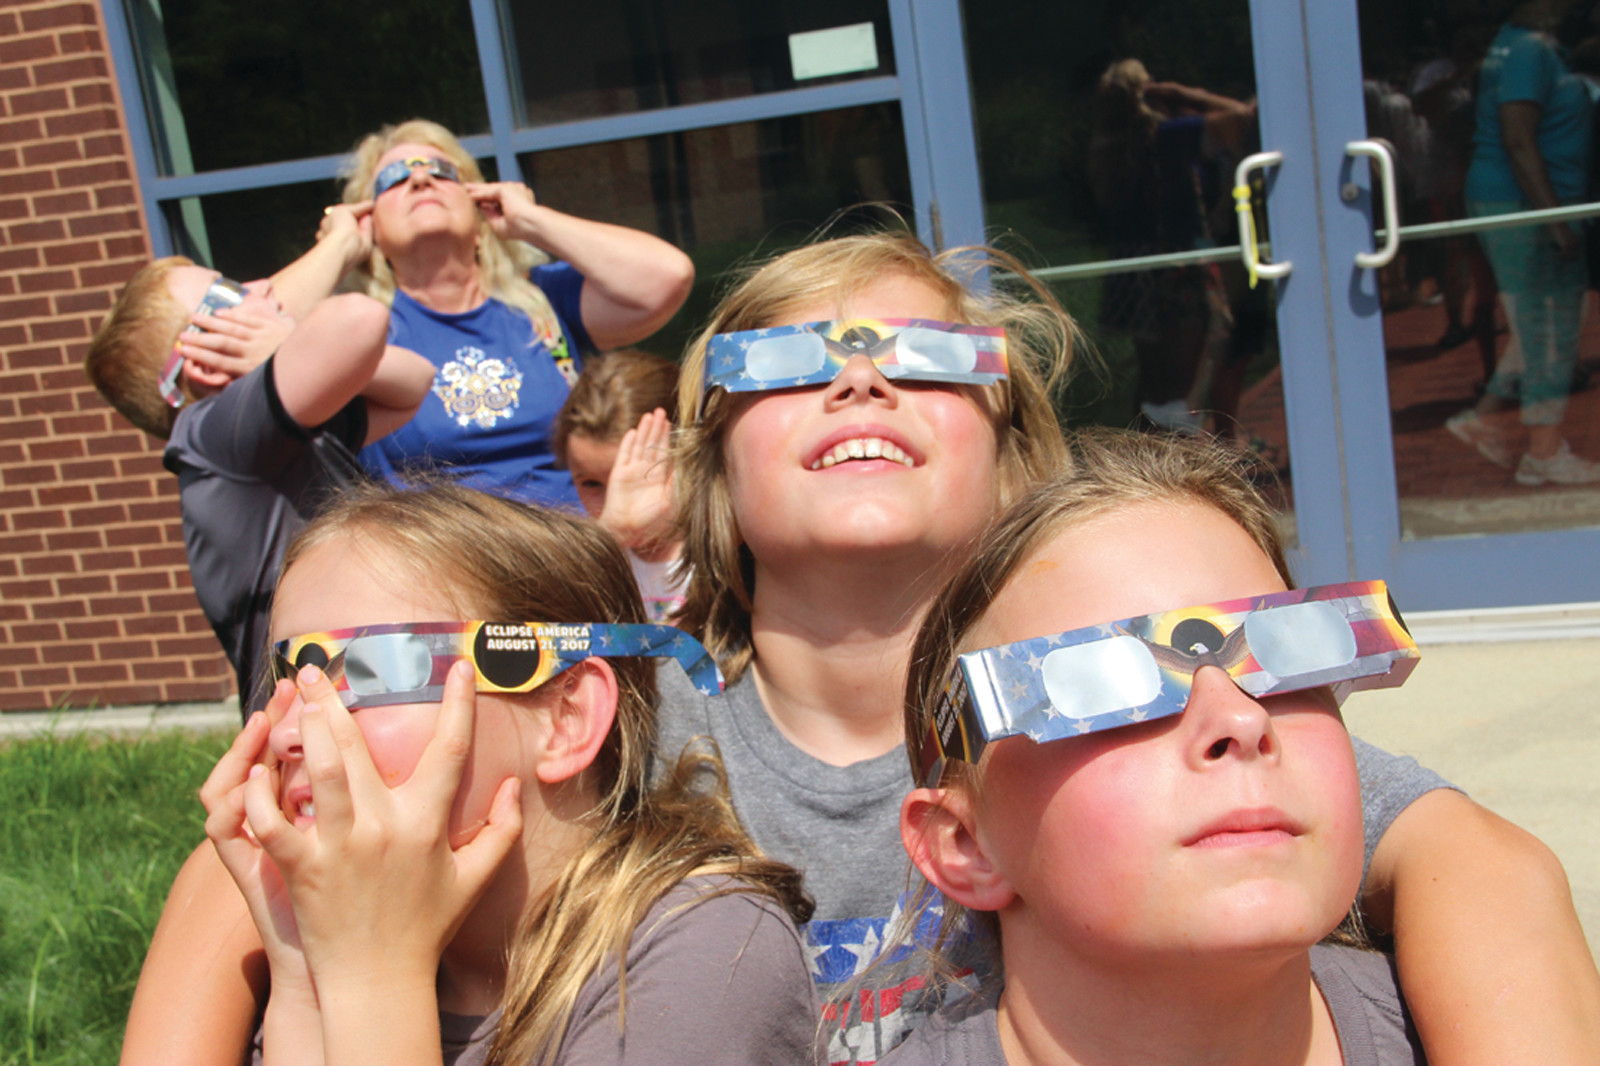 A LITTLE SUN MEANS TRIPLE THE FUN: Triplets Reilly, Zachary and Chloe Darrow look at the eclipse through their special glasses. Below, the sun as it appeared at the height of the eclipse in Rhode Island.